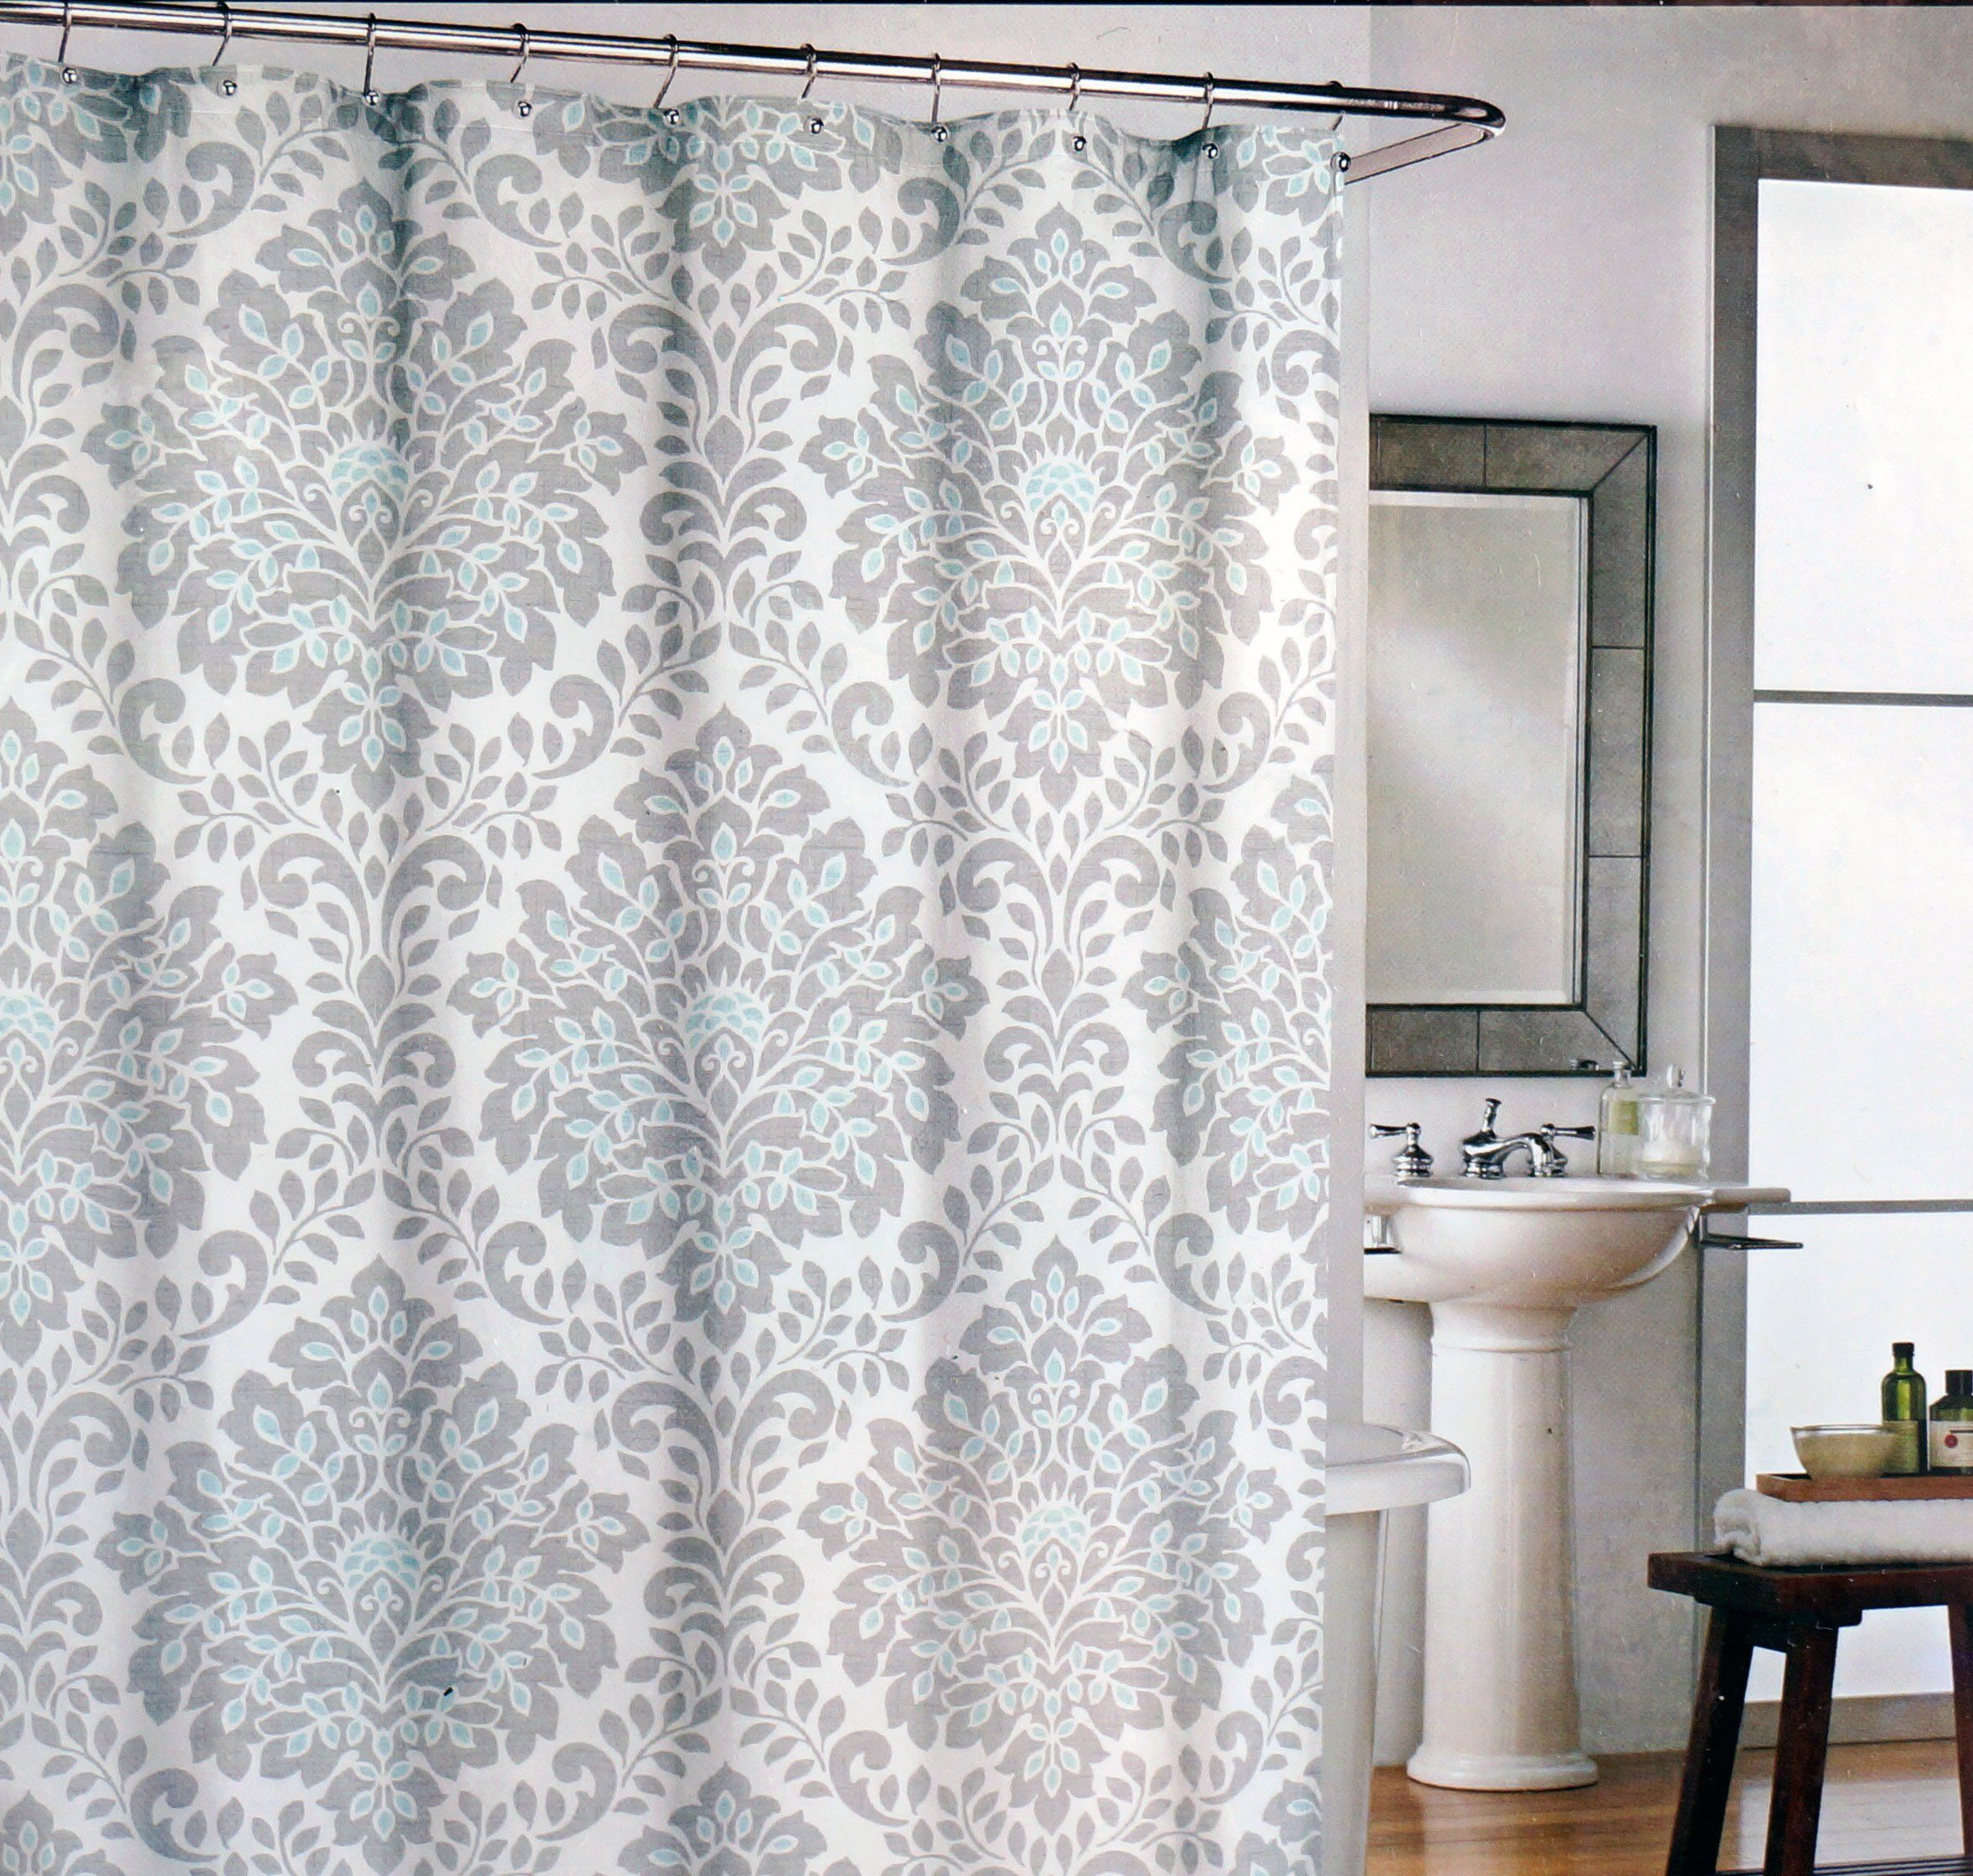 Cynthia Rowley Fabric Shower Curtain Gray Medallions With Teal